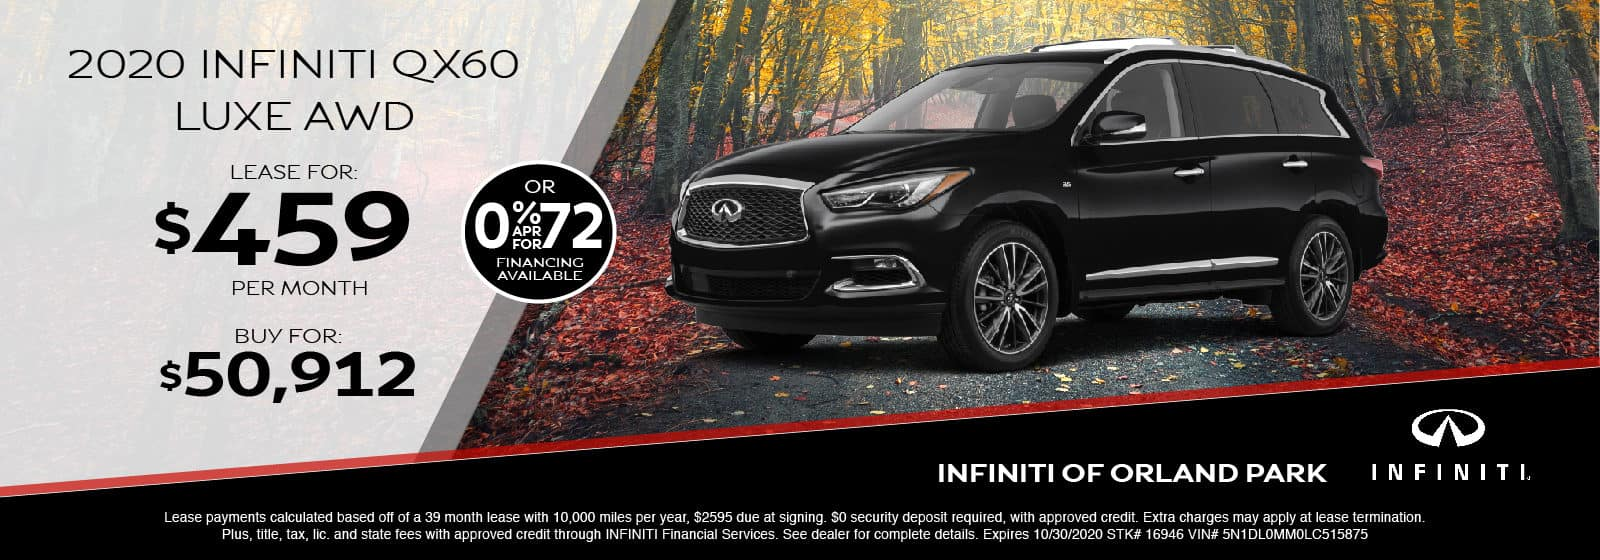 Lease a new 2020 QX60 for $459/month